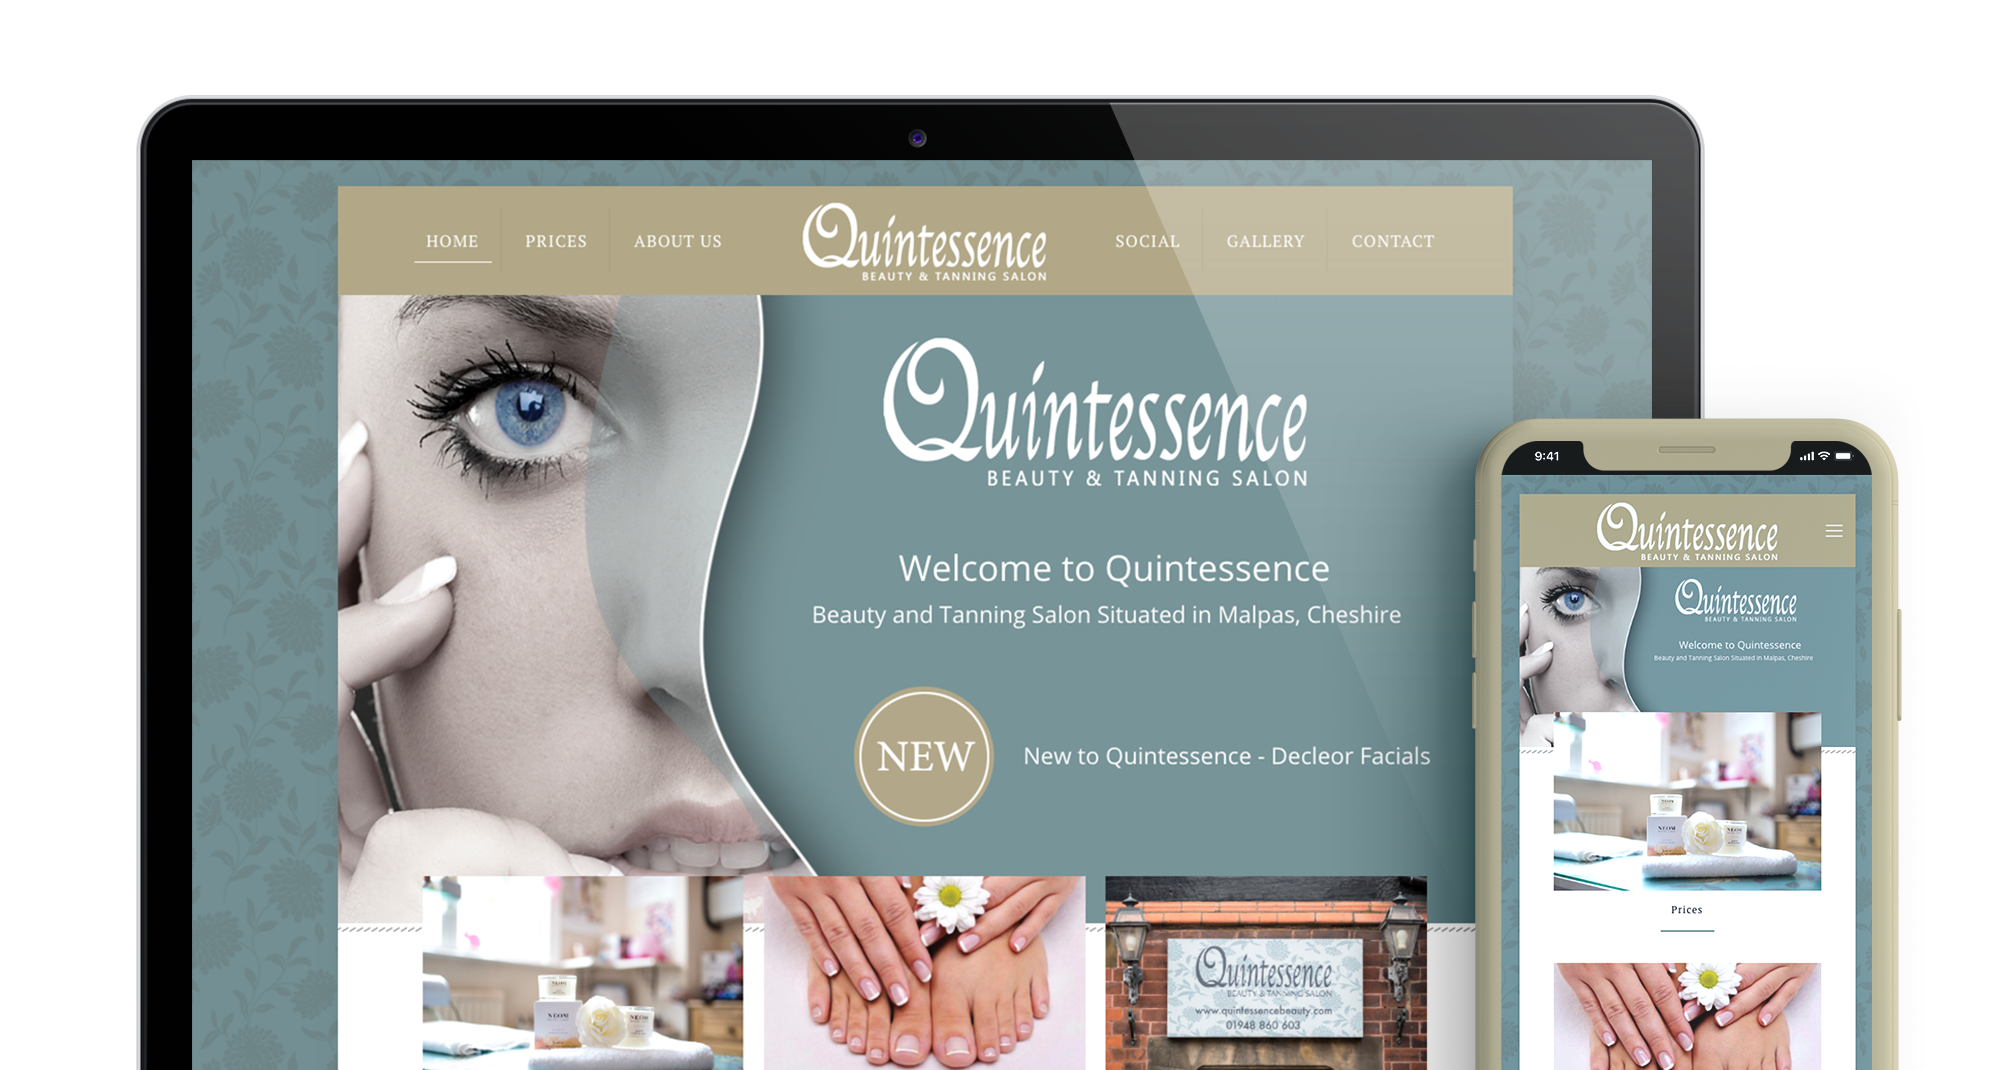 <span class='wpmi-mlabel'>Quintessence Header Main Image</span>